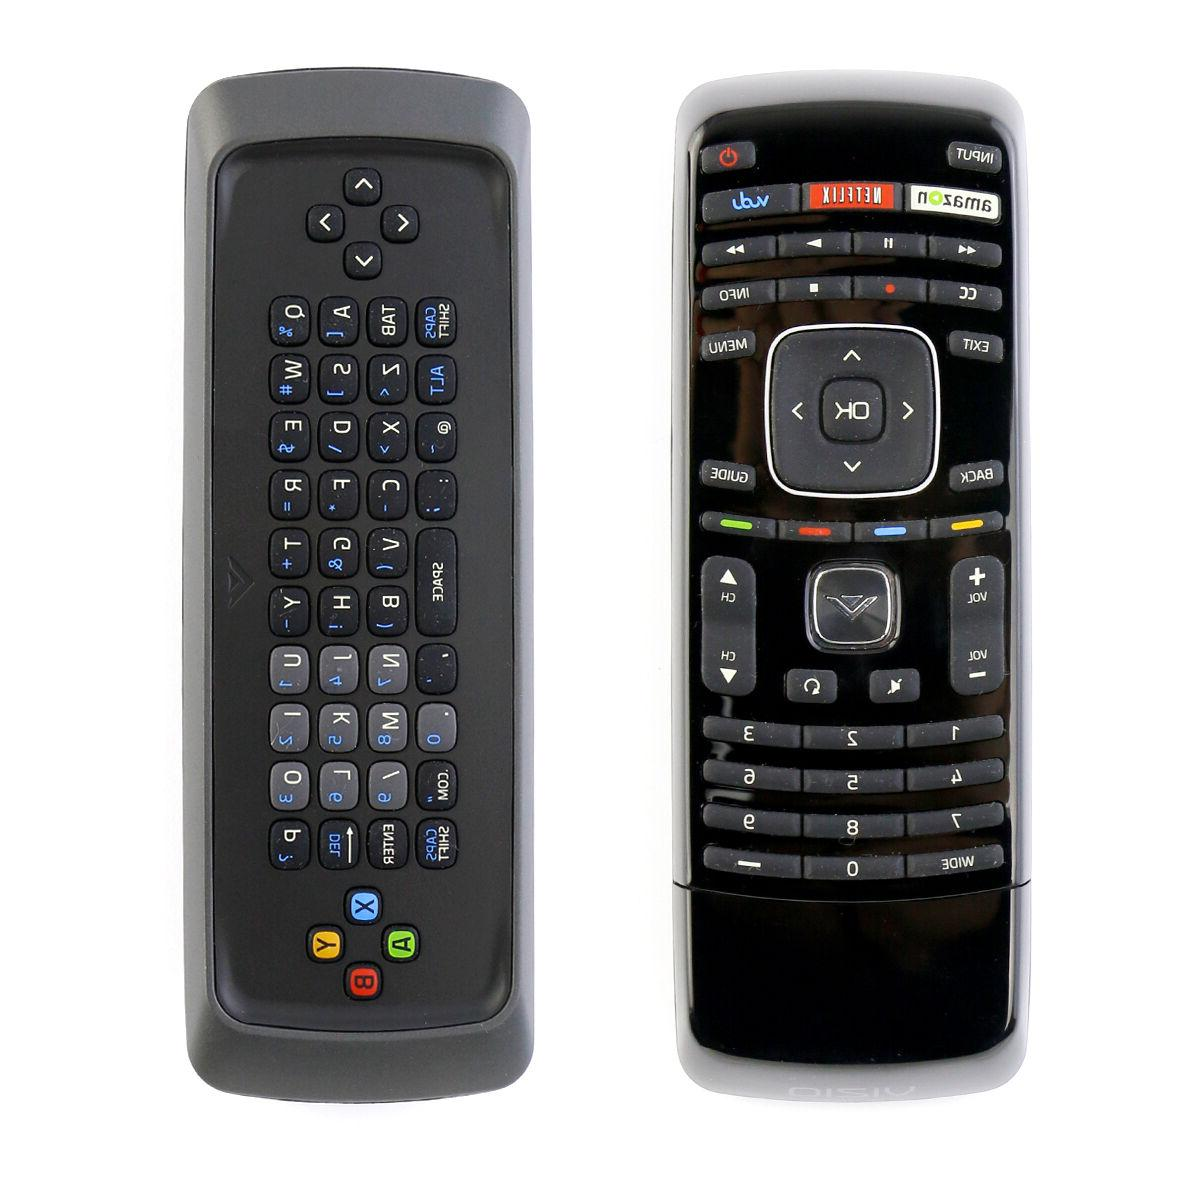 new xrt300 qwerty keyboard remote control